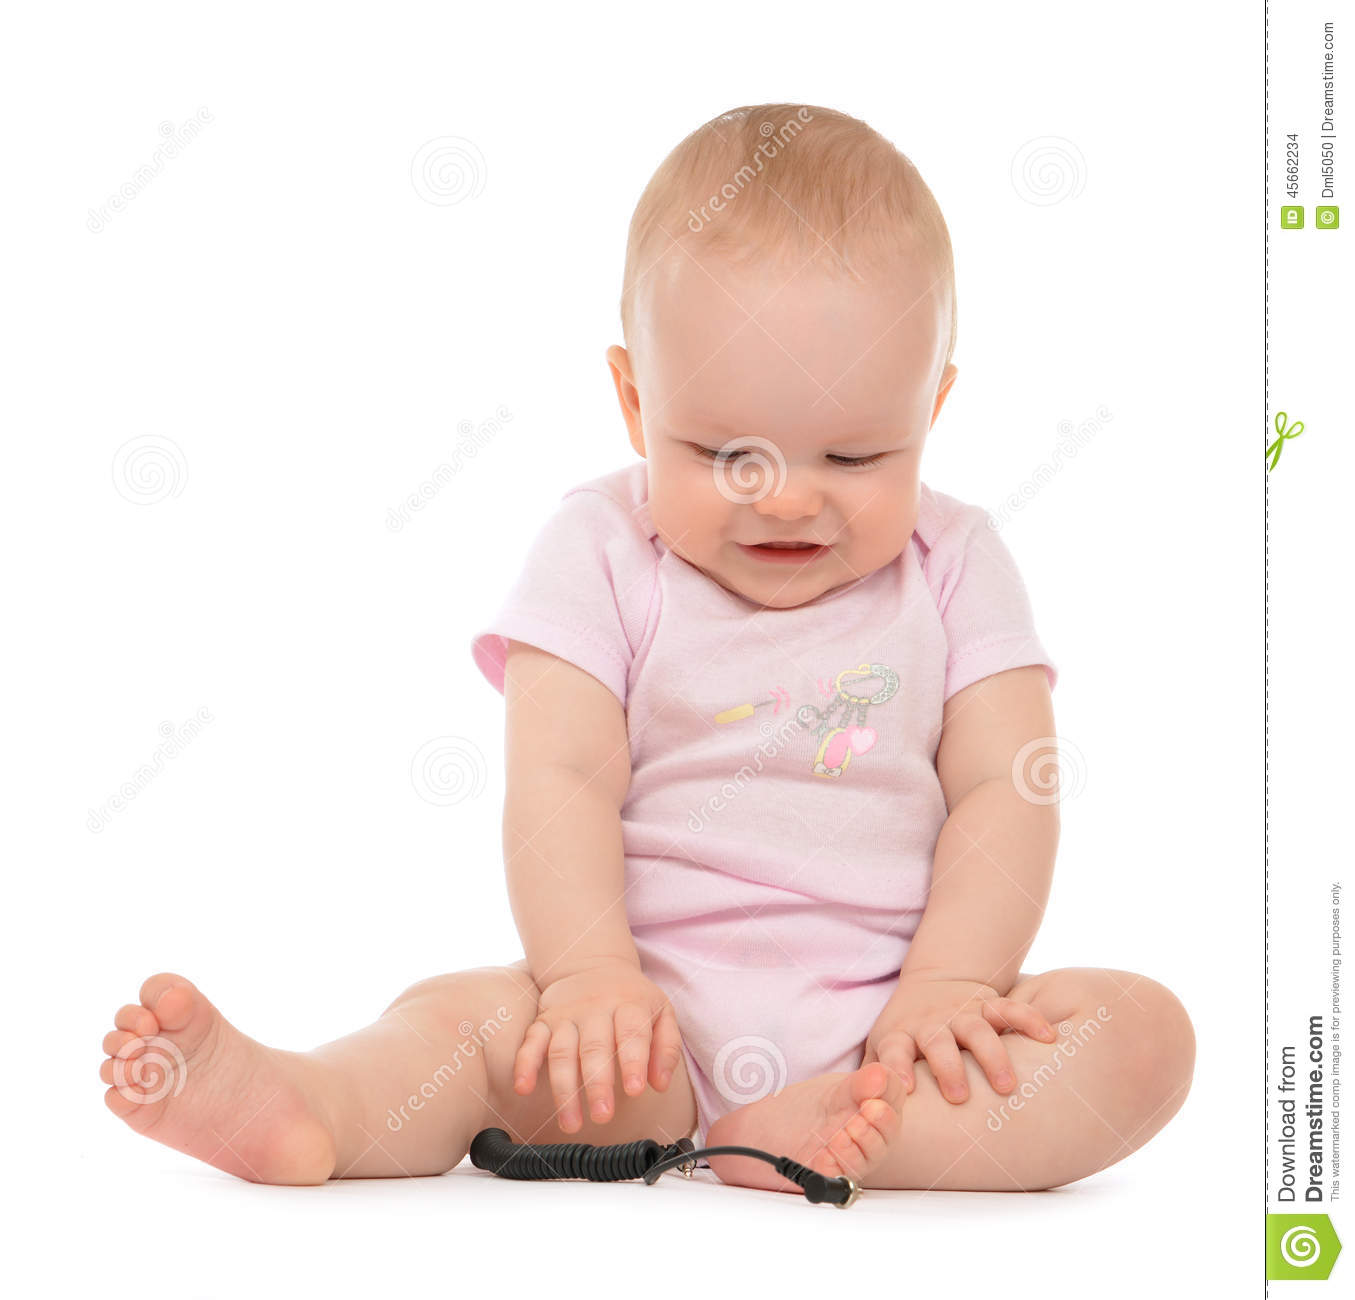 Infant Child Baby Toddler Sitting Laughing Looking Down ...